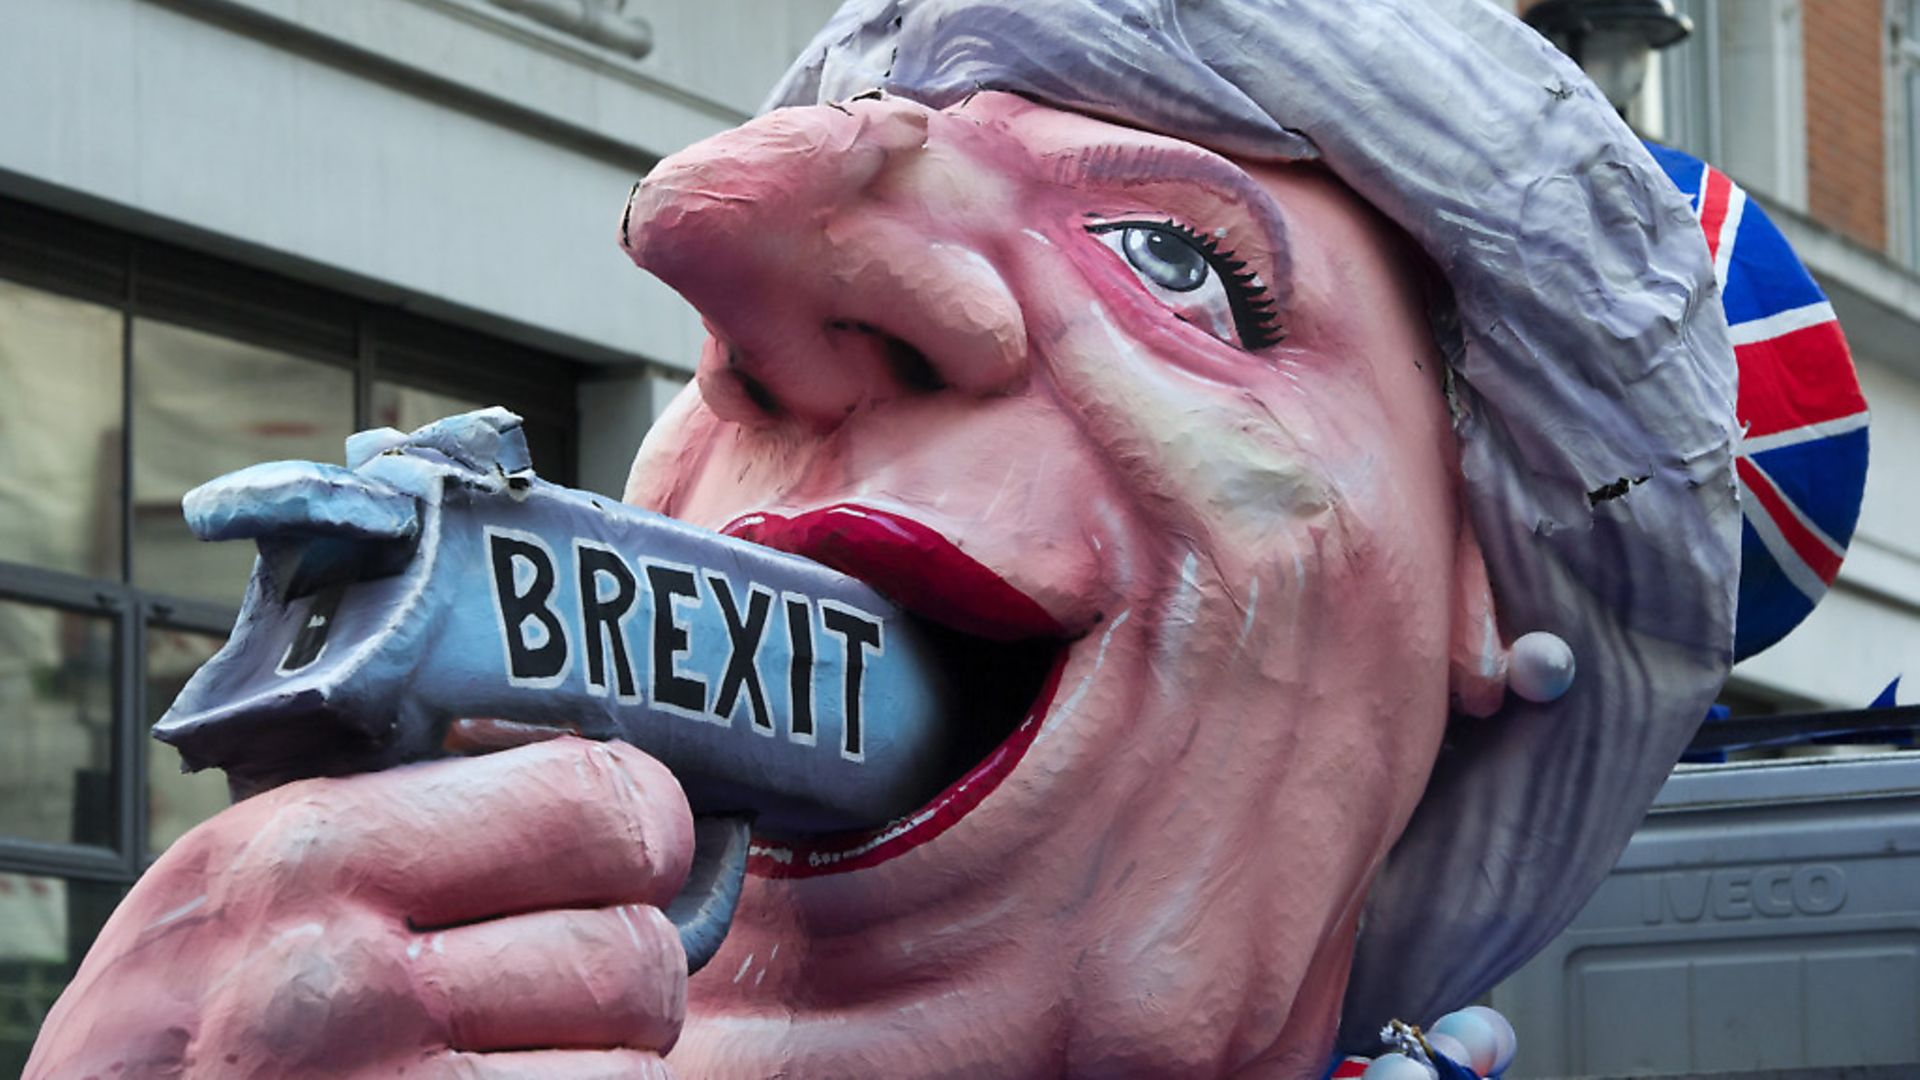 An anti-Brexit protest outside the BBC as Theresa May appears on The One Show during the 2017 General Election.  Photograph: Ben Stevens/PA. - Credit: PA Wire/PA Images